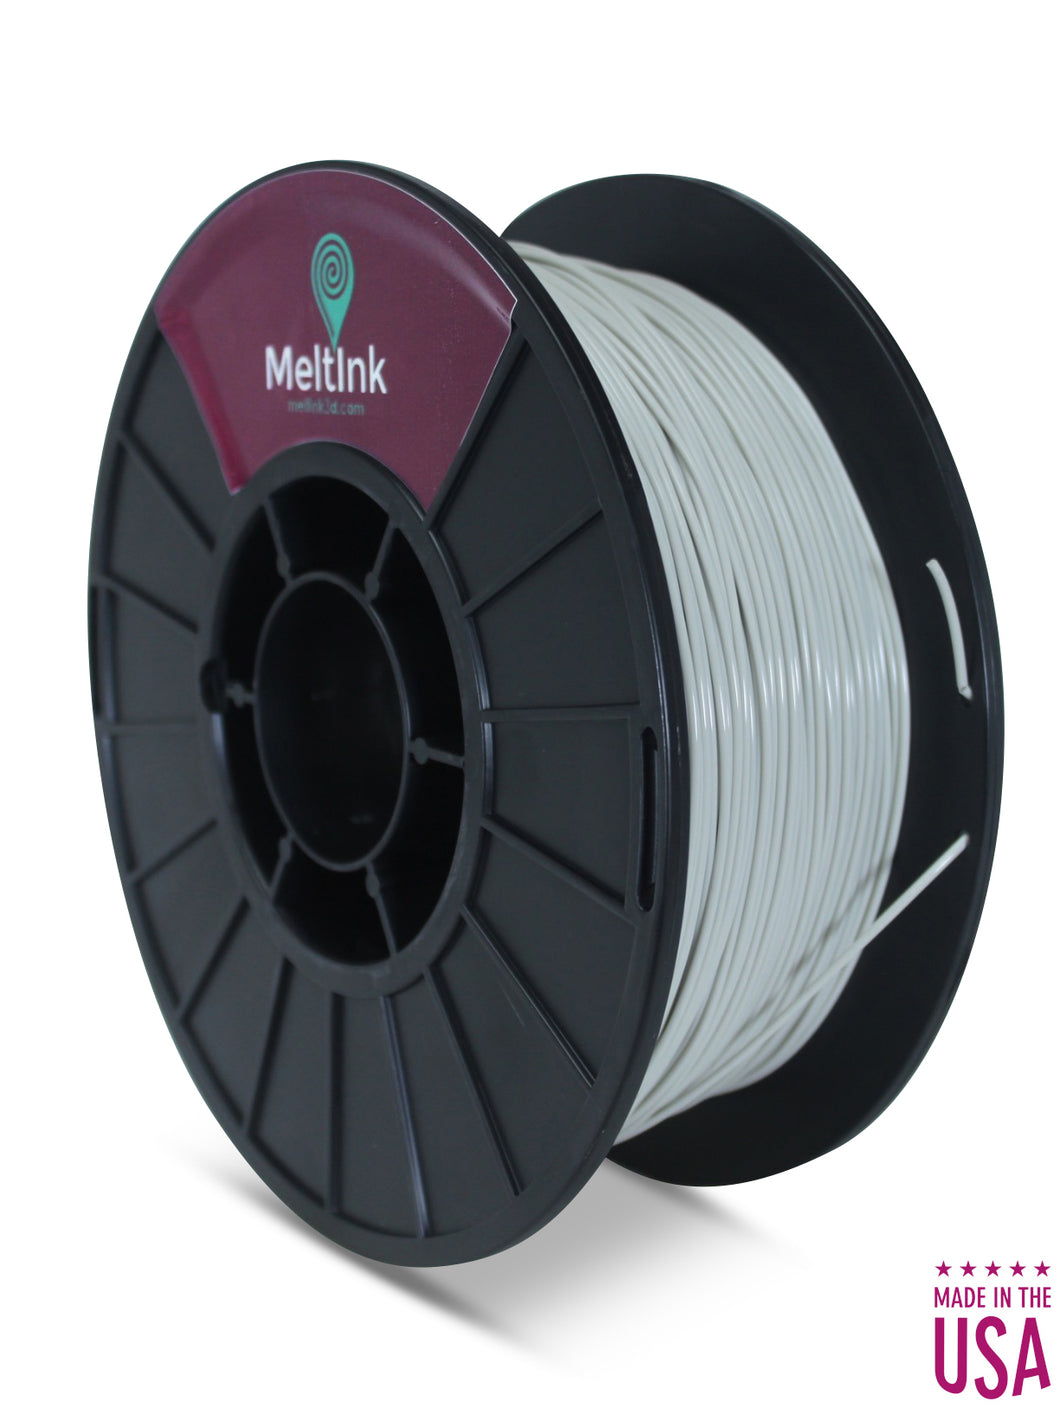 MeltInk3D ABS- 1K175GRY05 Cool Gray ABS 3D Printer Filament Ø 1.75mm, 1Kg, Dimensional Accuracy: ± 0.05mm